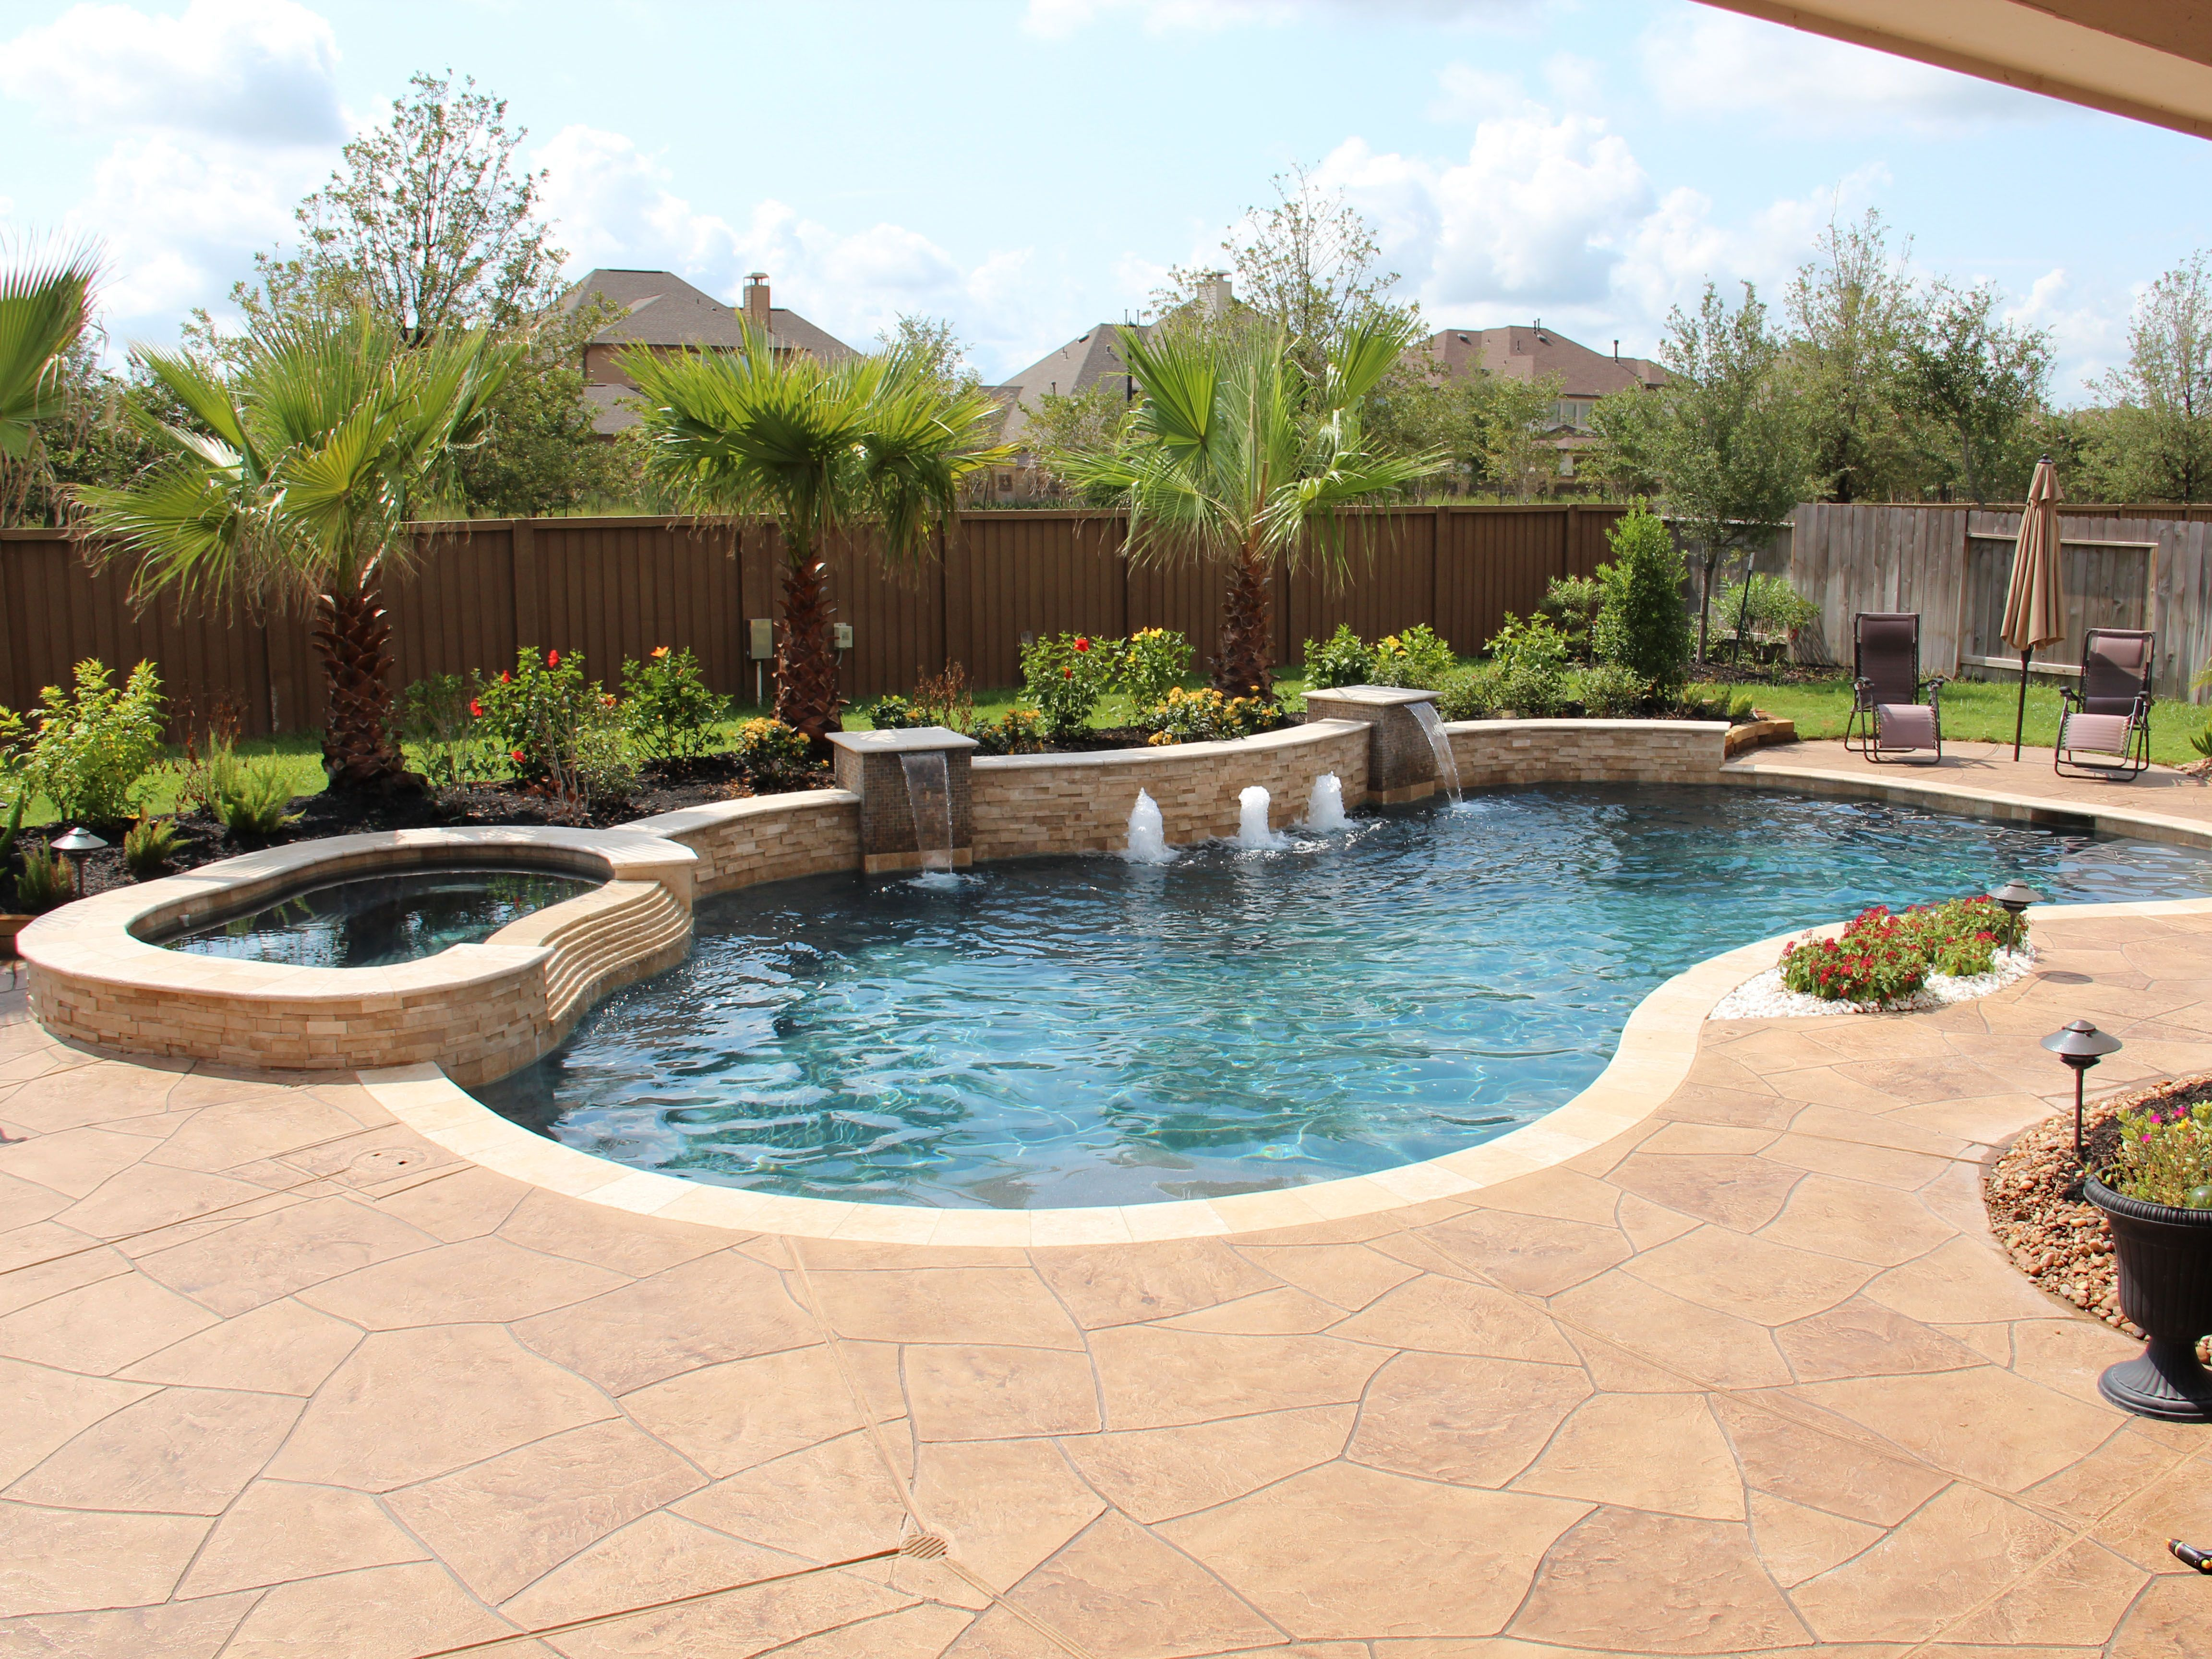 This is the same pool in image 114. Here is a full view of the pool and patio surface. From this angle you can see that the raised back beam is higher in the middle and that it is curved. The patio is a textured overlay pattern with travertine coping. #backyardremodel